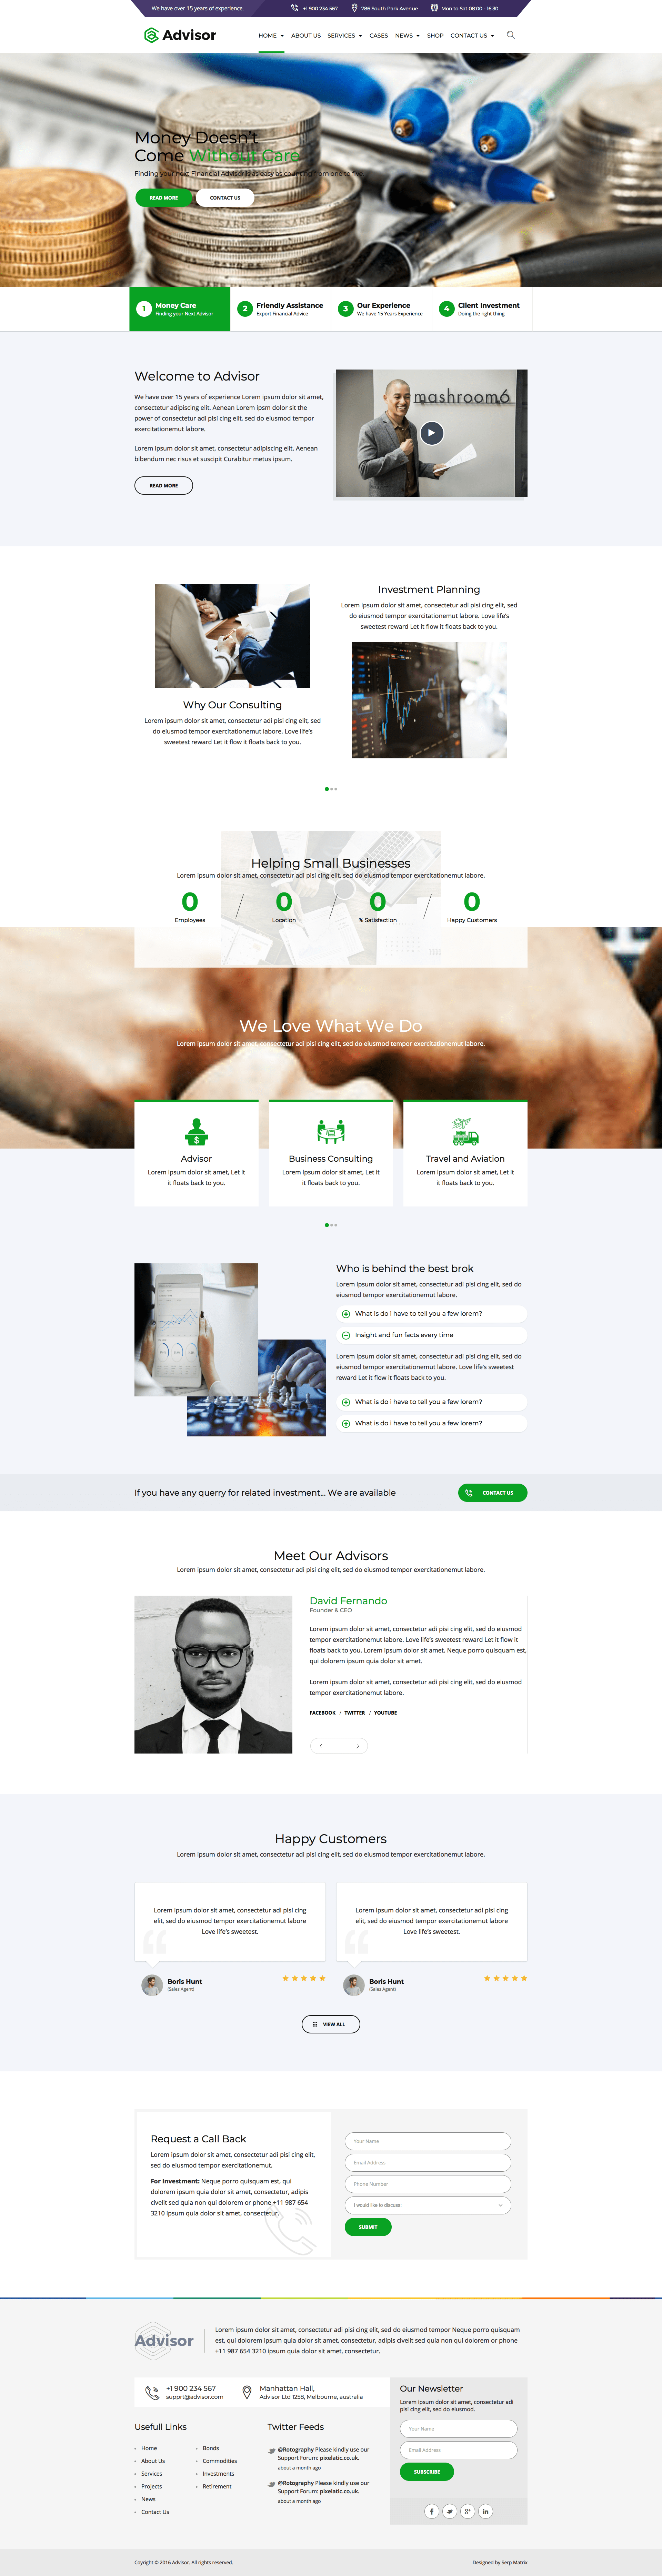 Advisor and Consulting Web Design Template